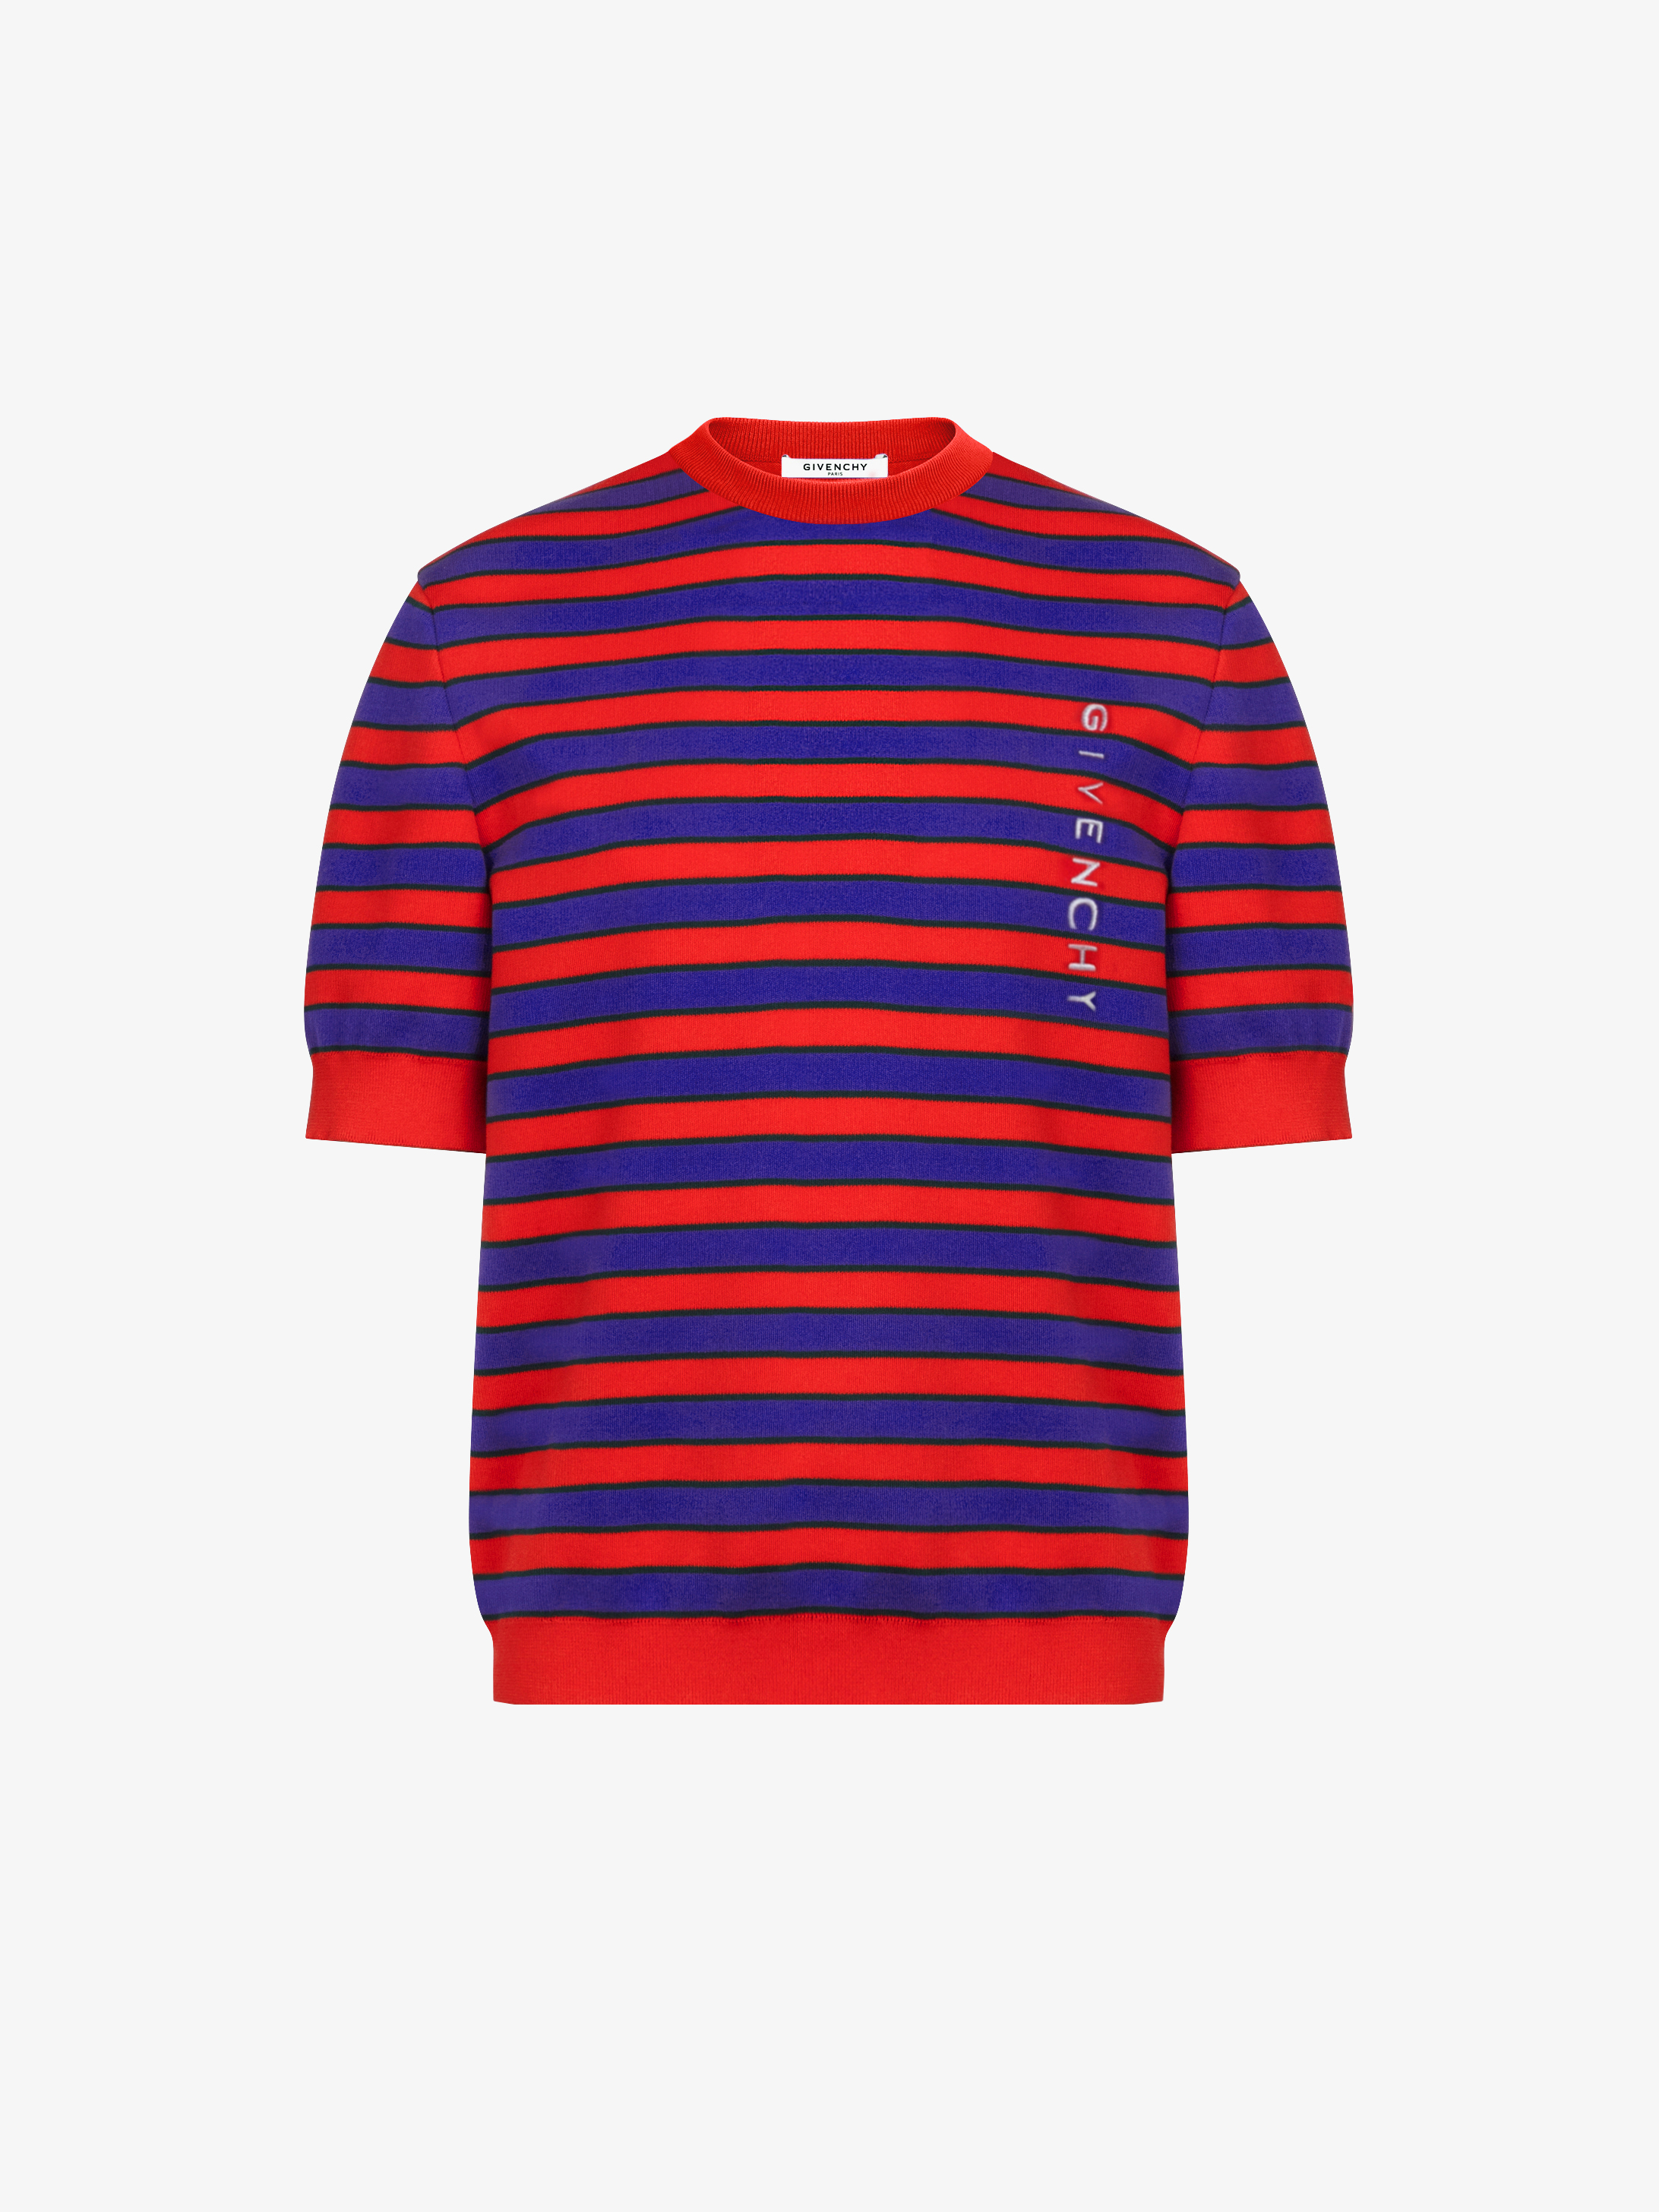 GIVENCHY striped knitted top